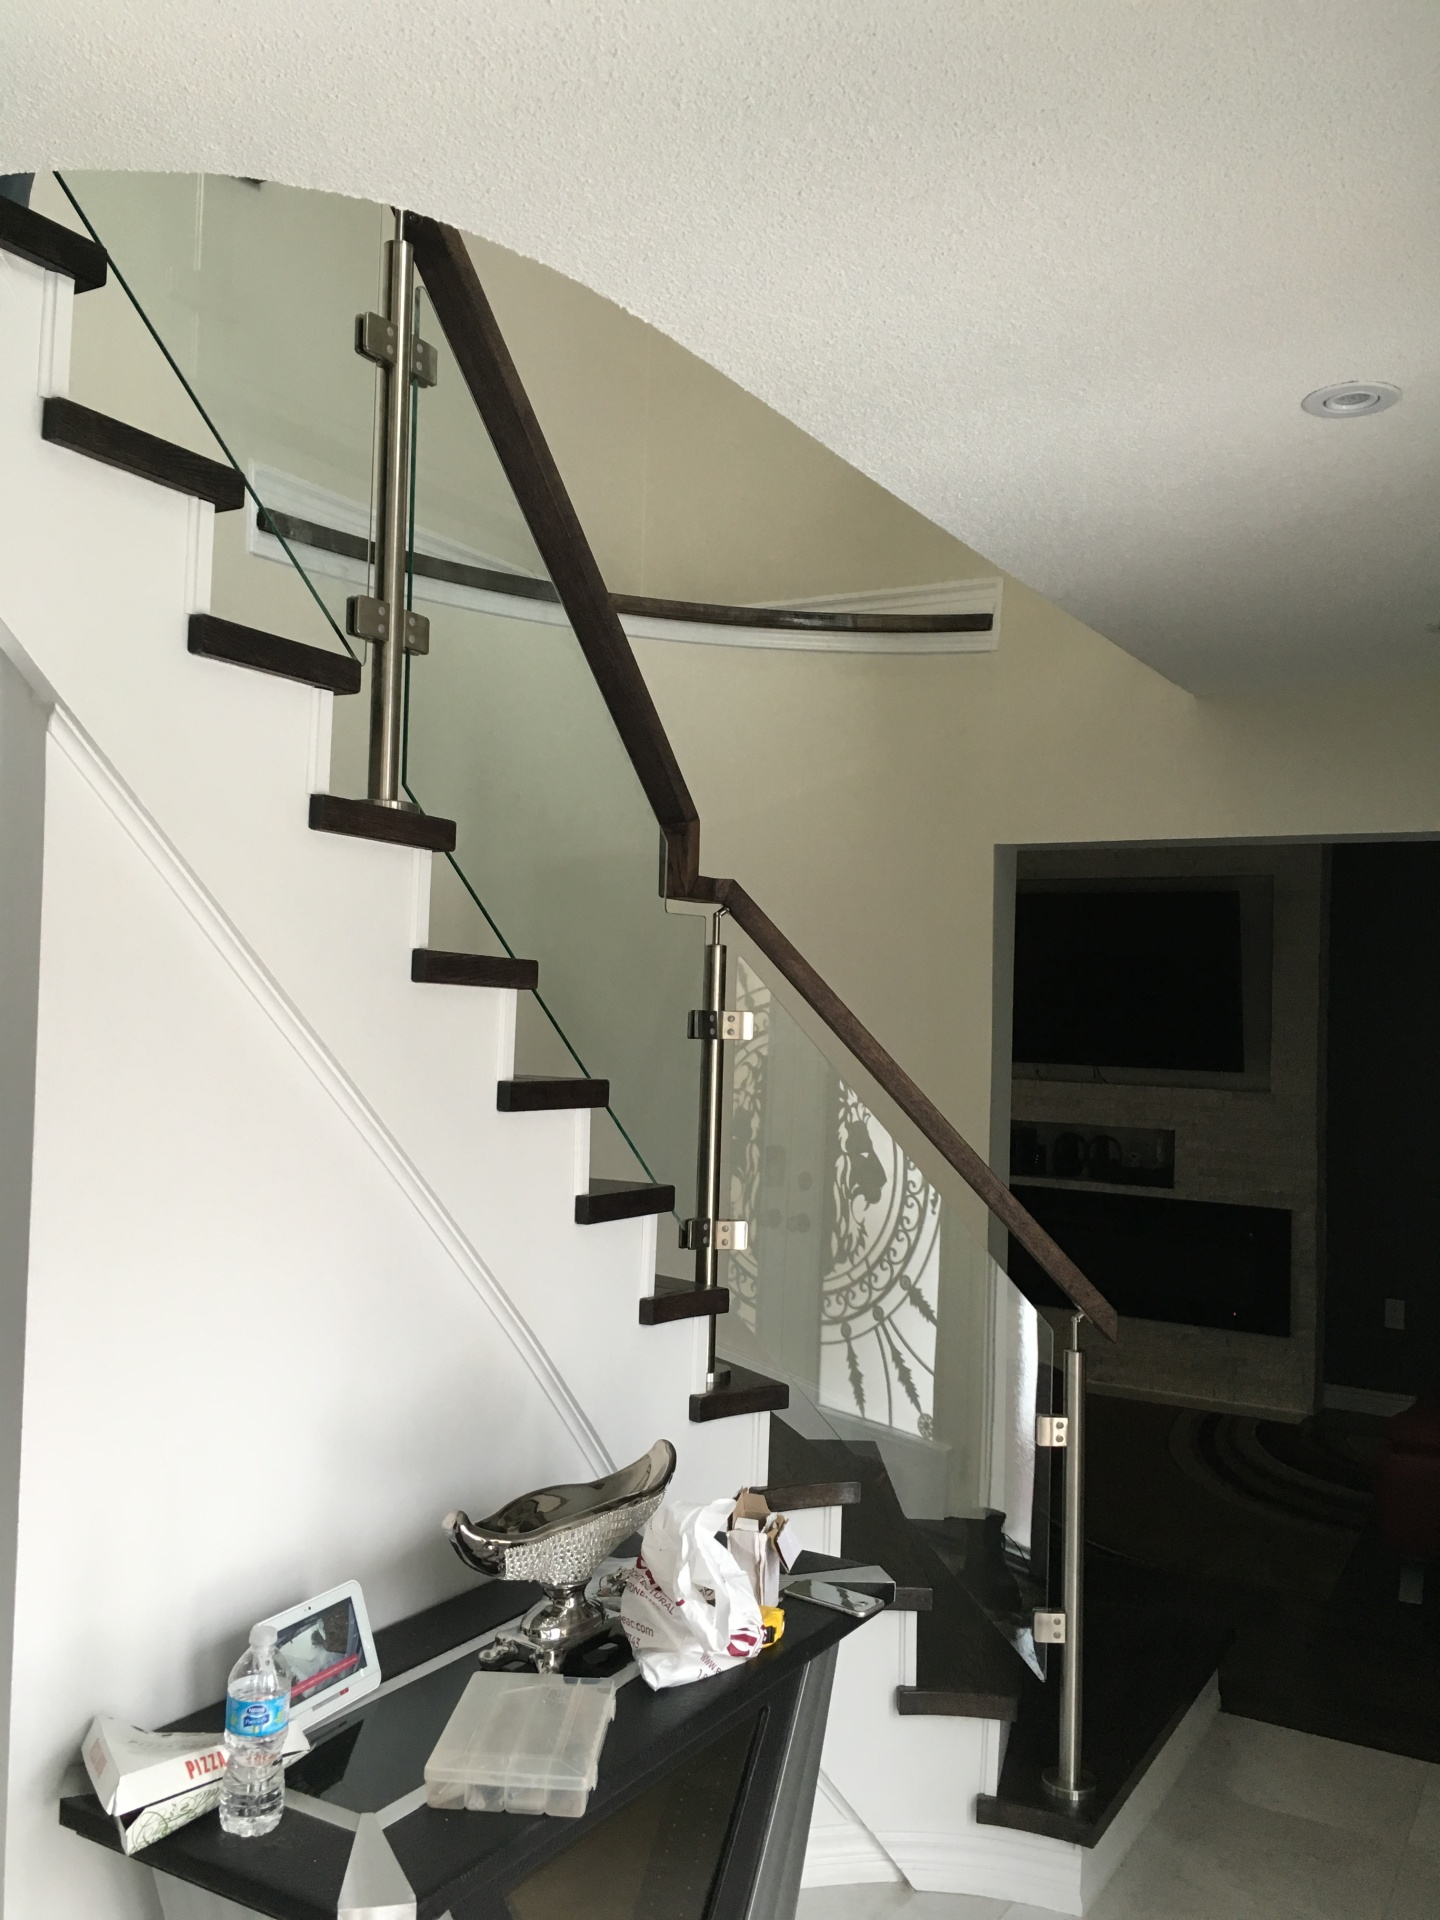 Full post glass railings